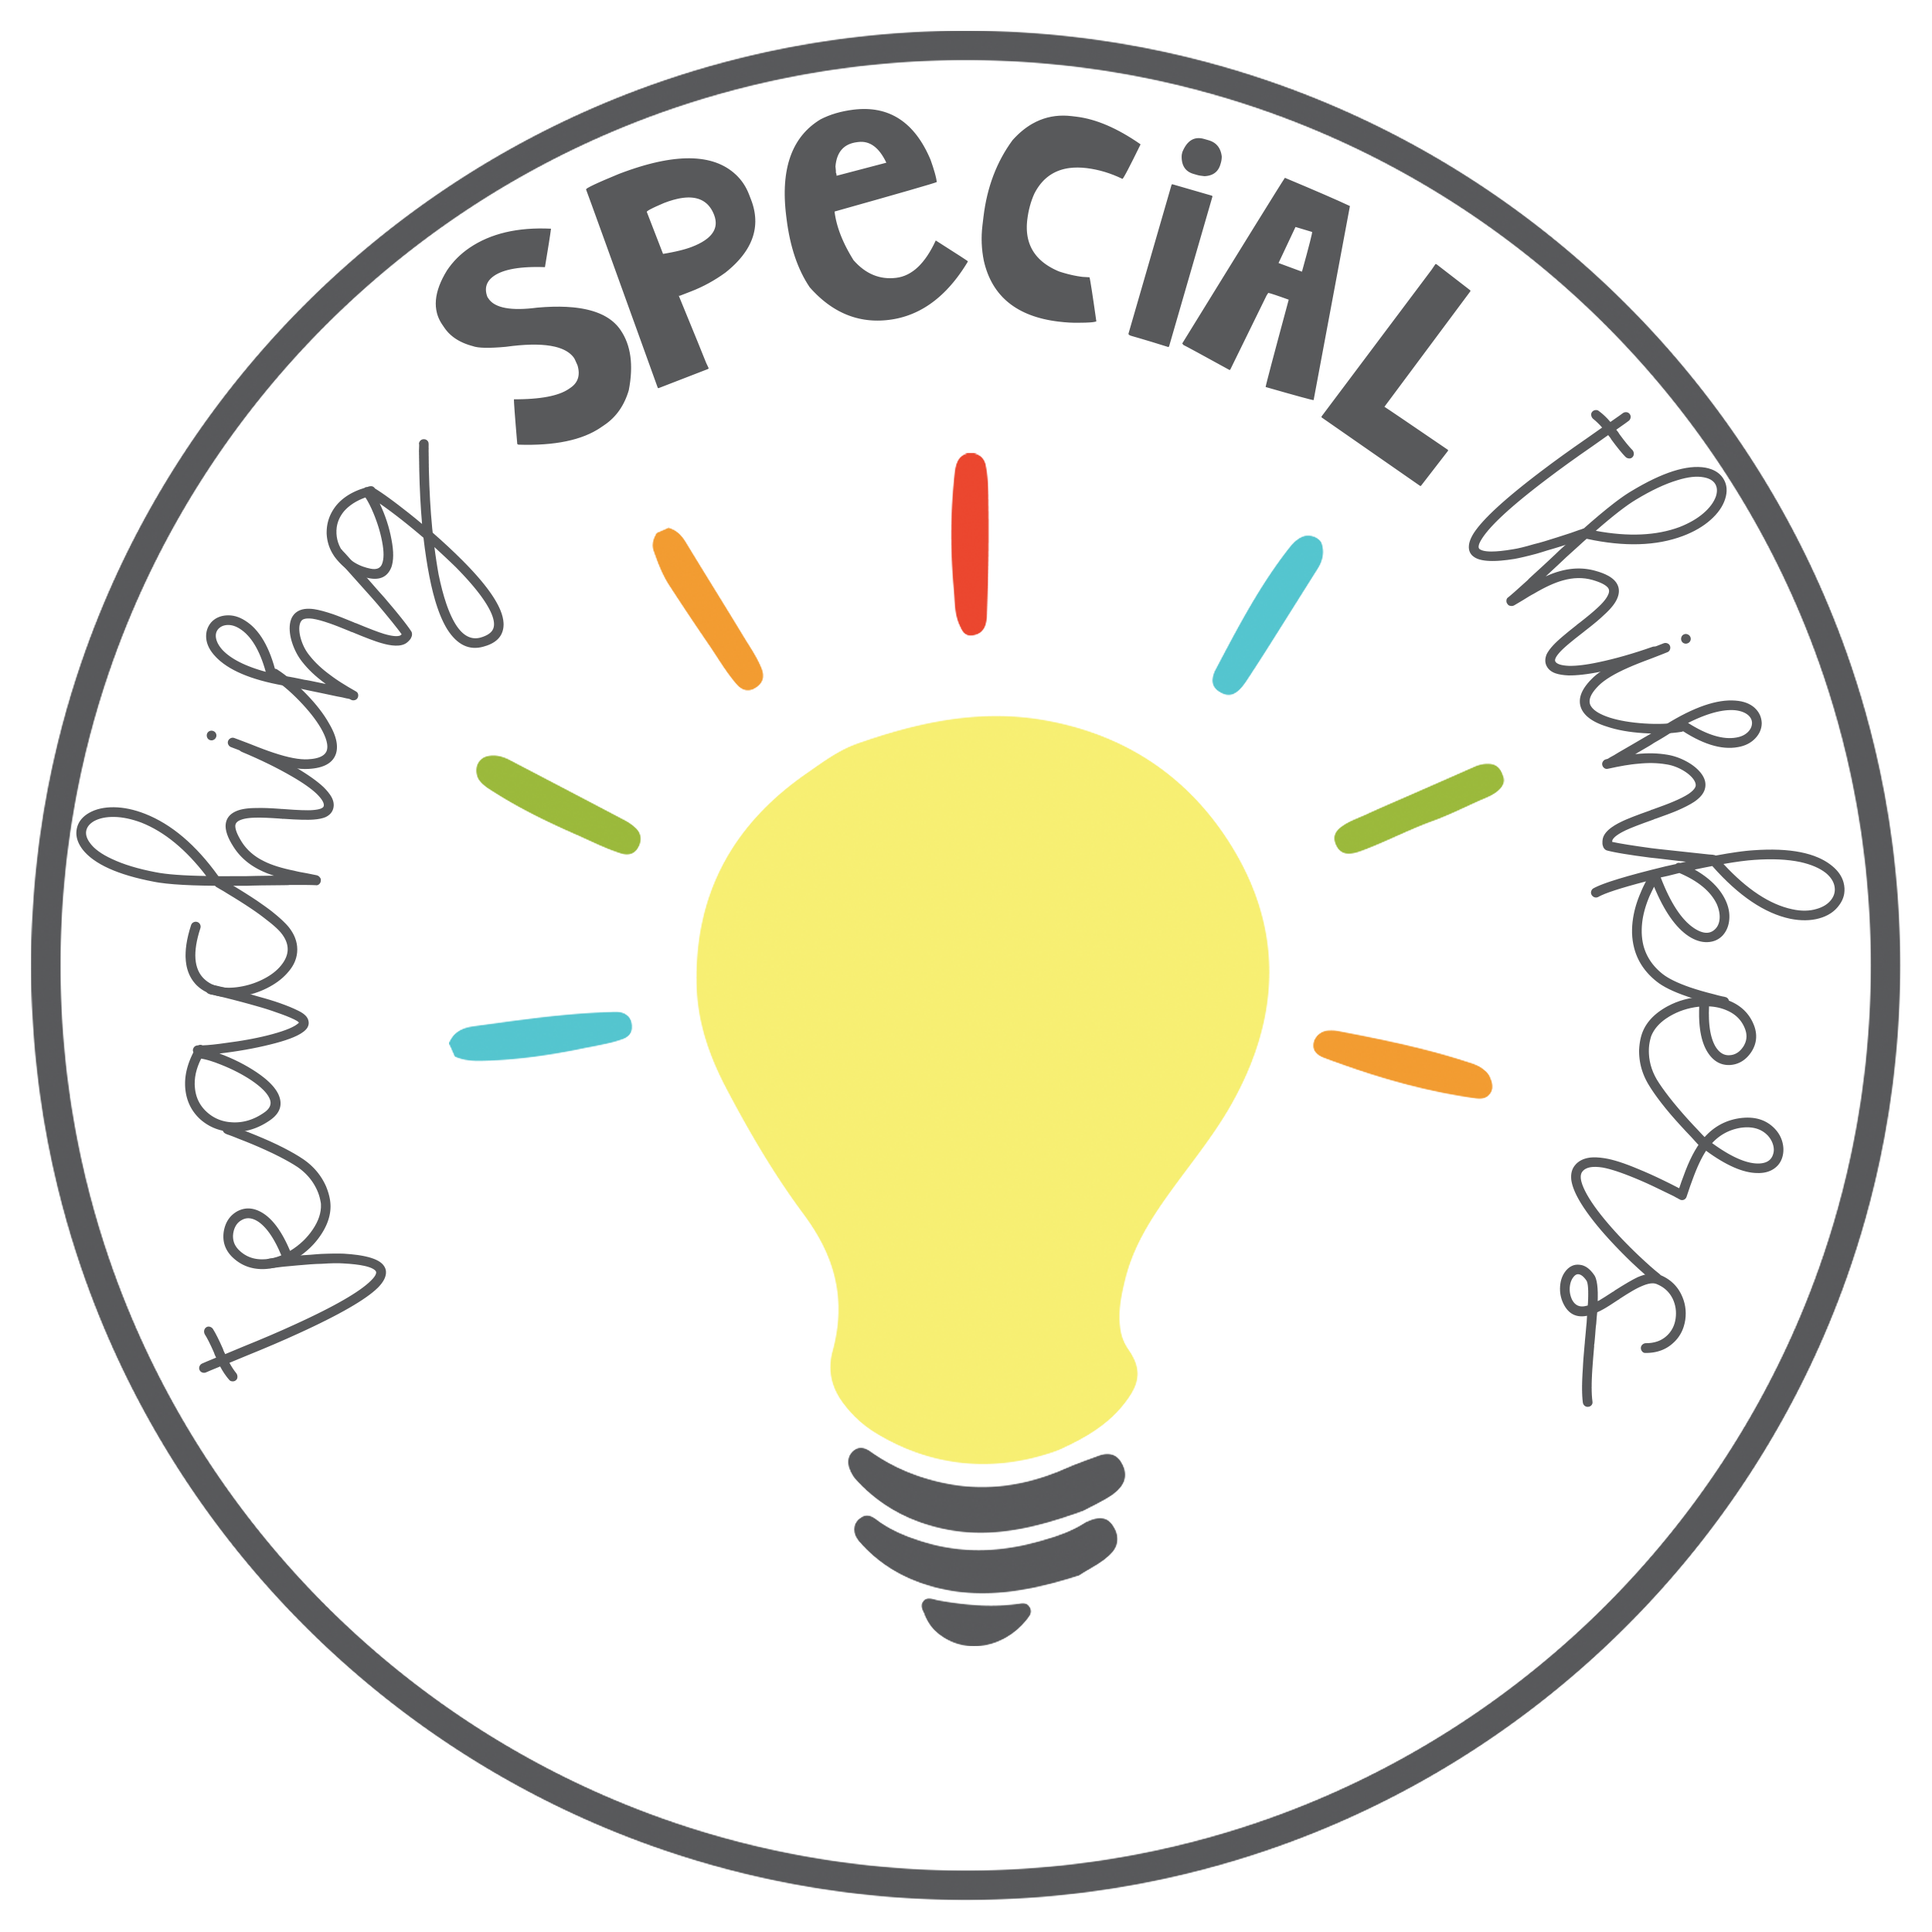 Goal clipart special education. Celebrating diversity with little